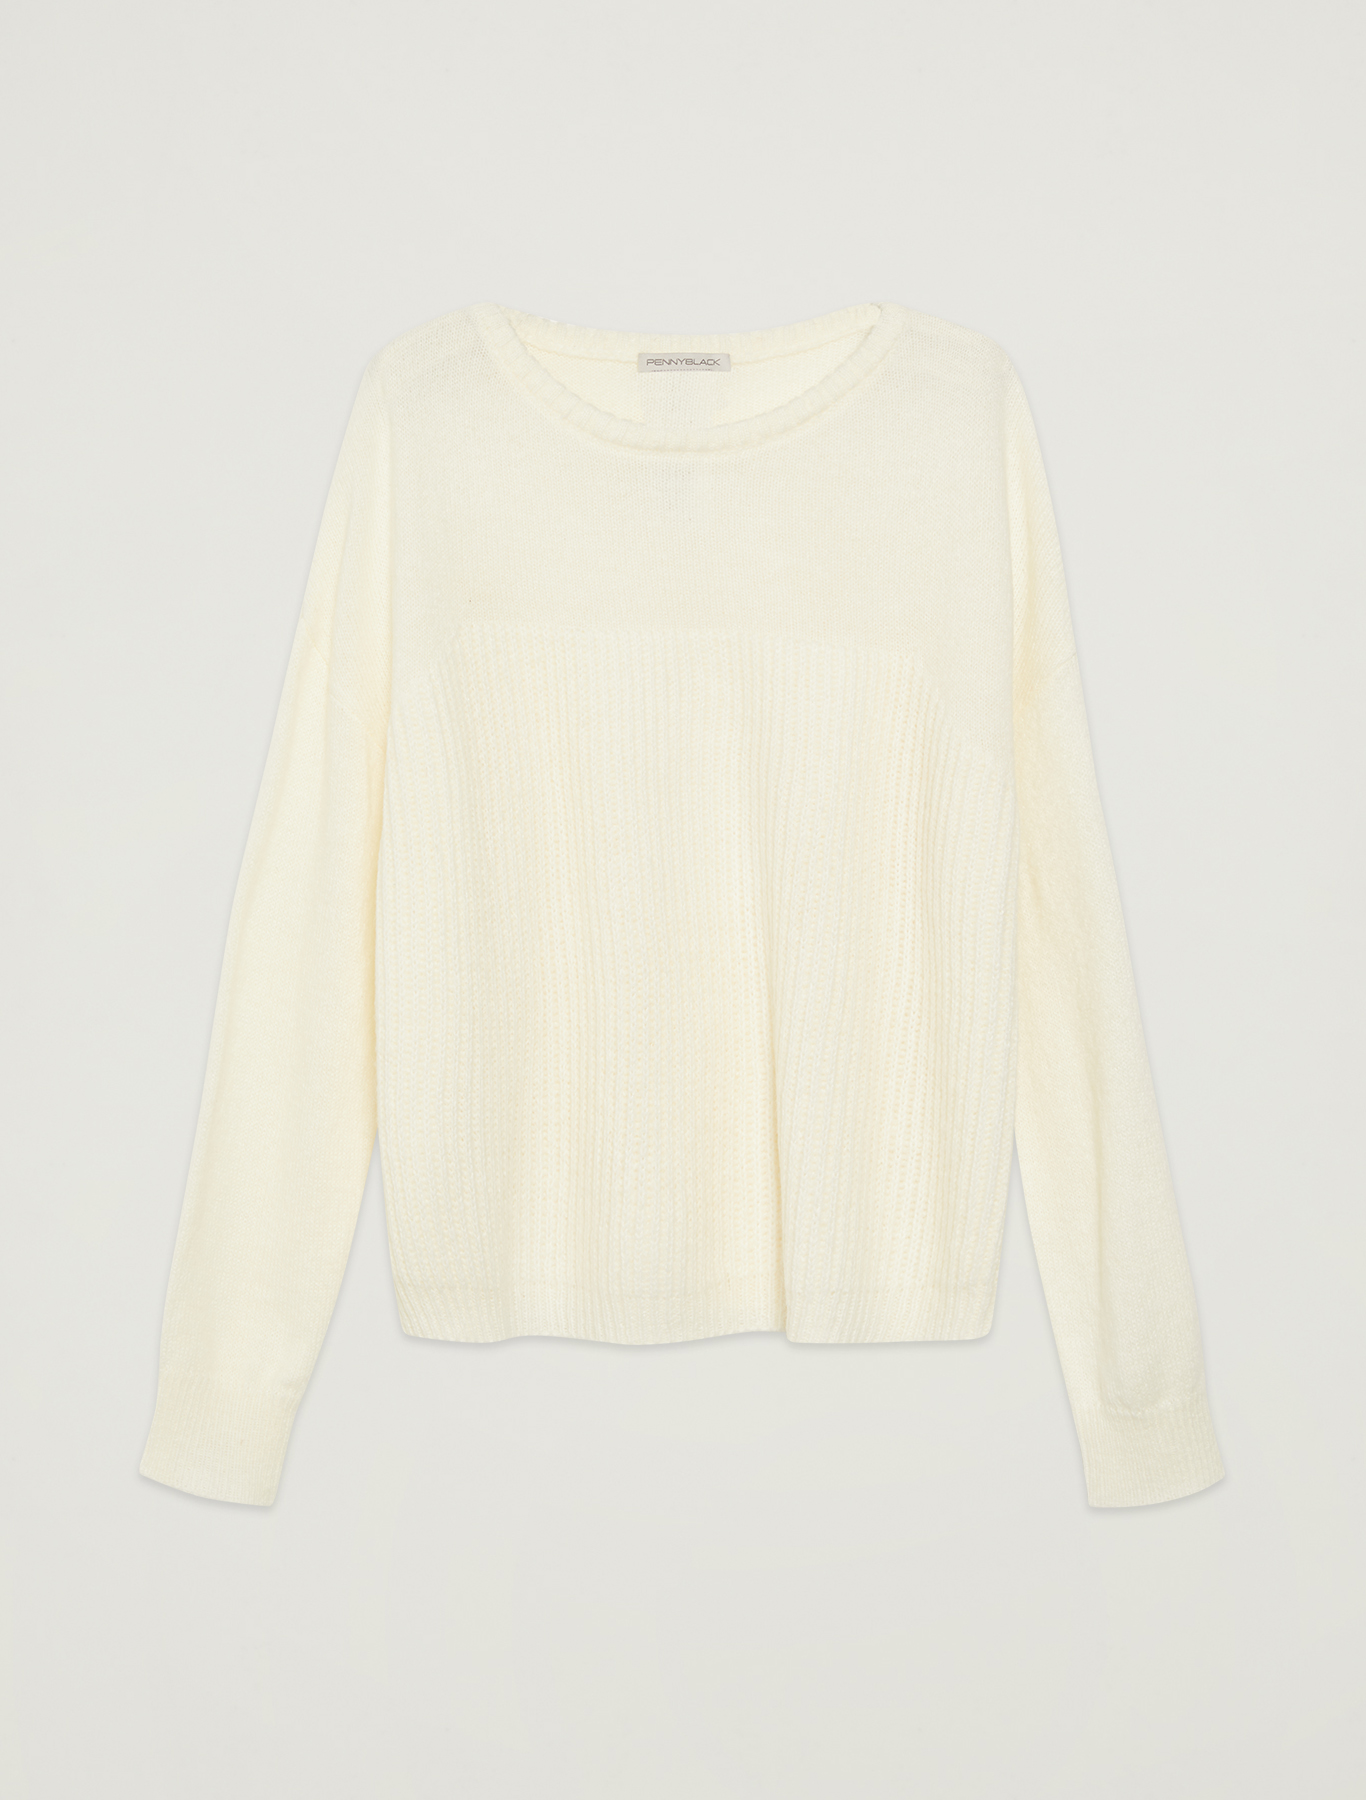 English rib knit jumper - white - pennyblack